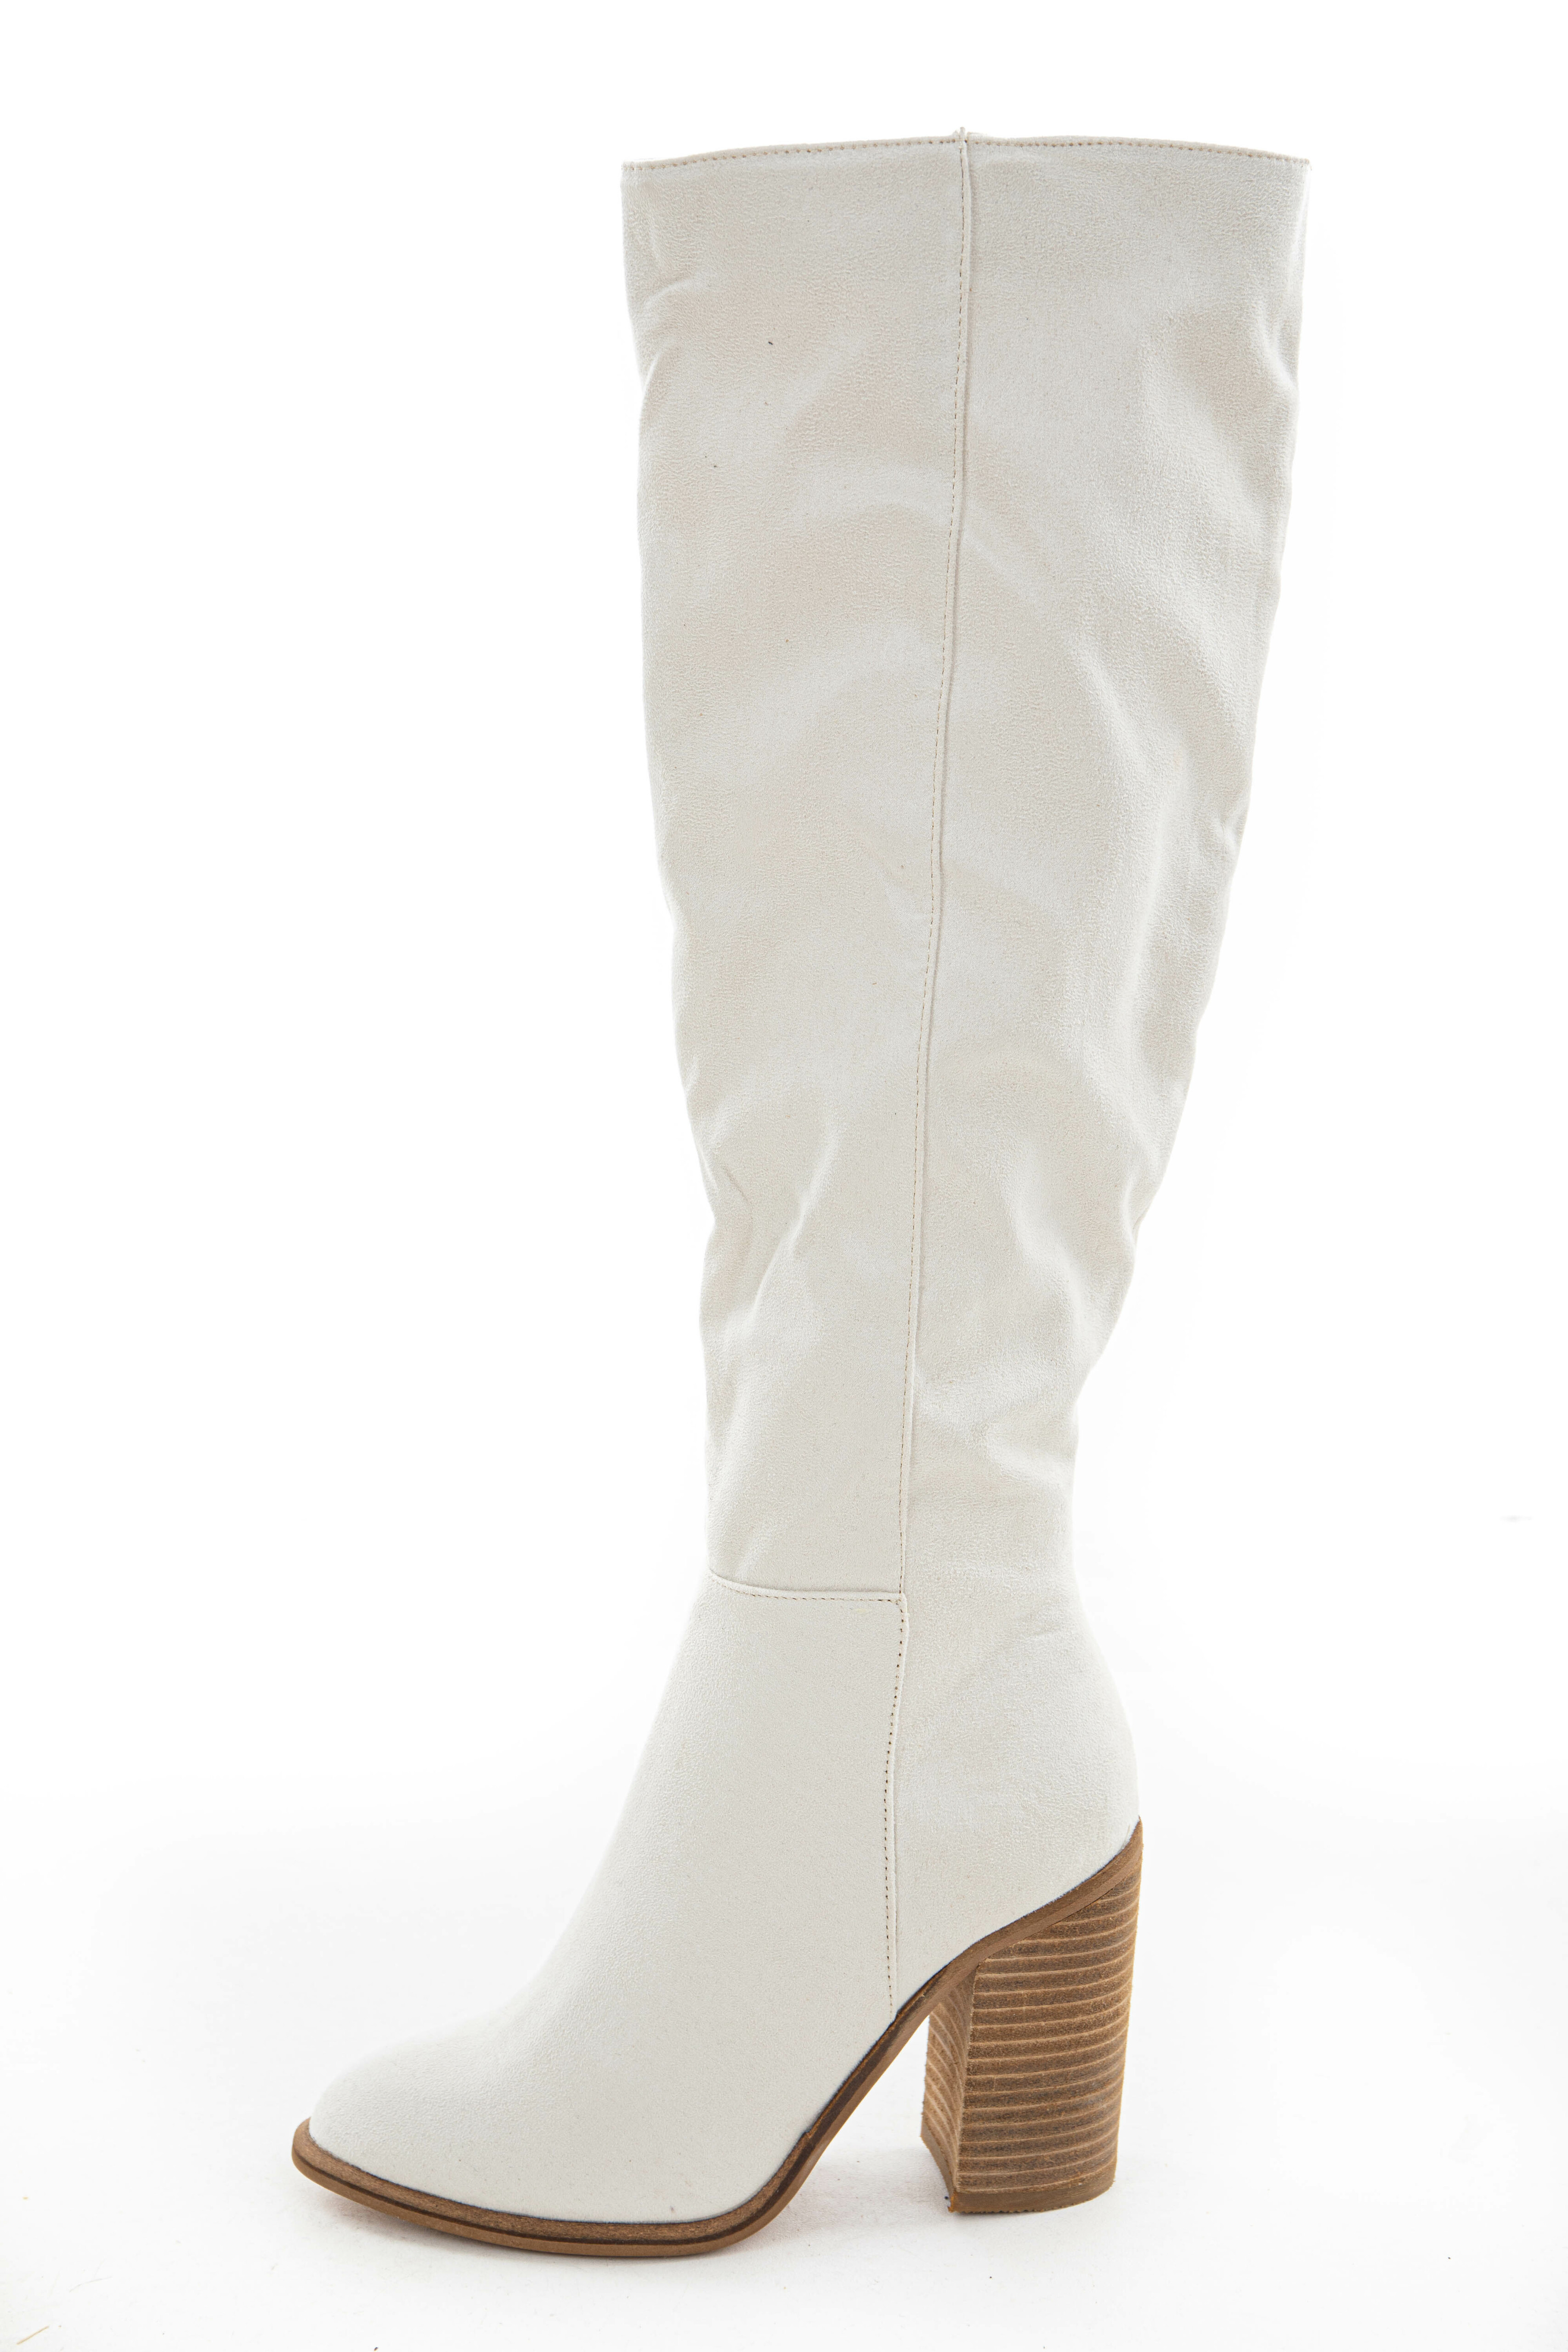 Vanilla Faux Suede Tall Heeled Boots